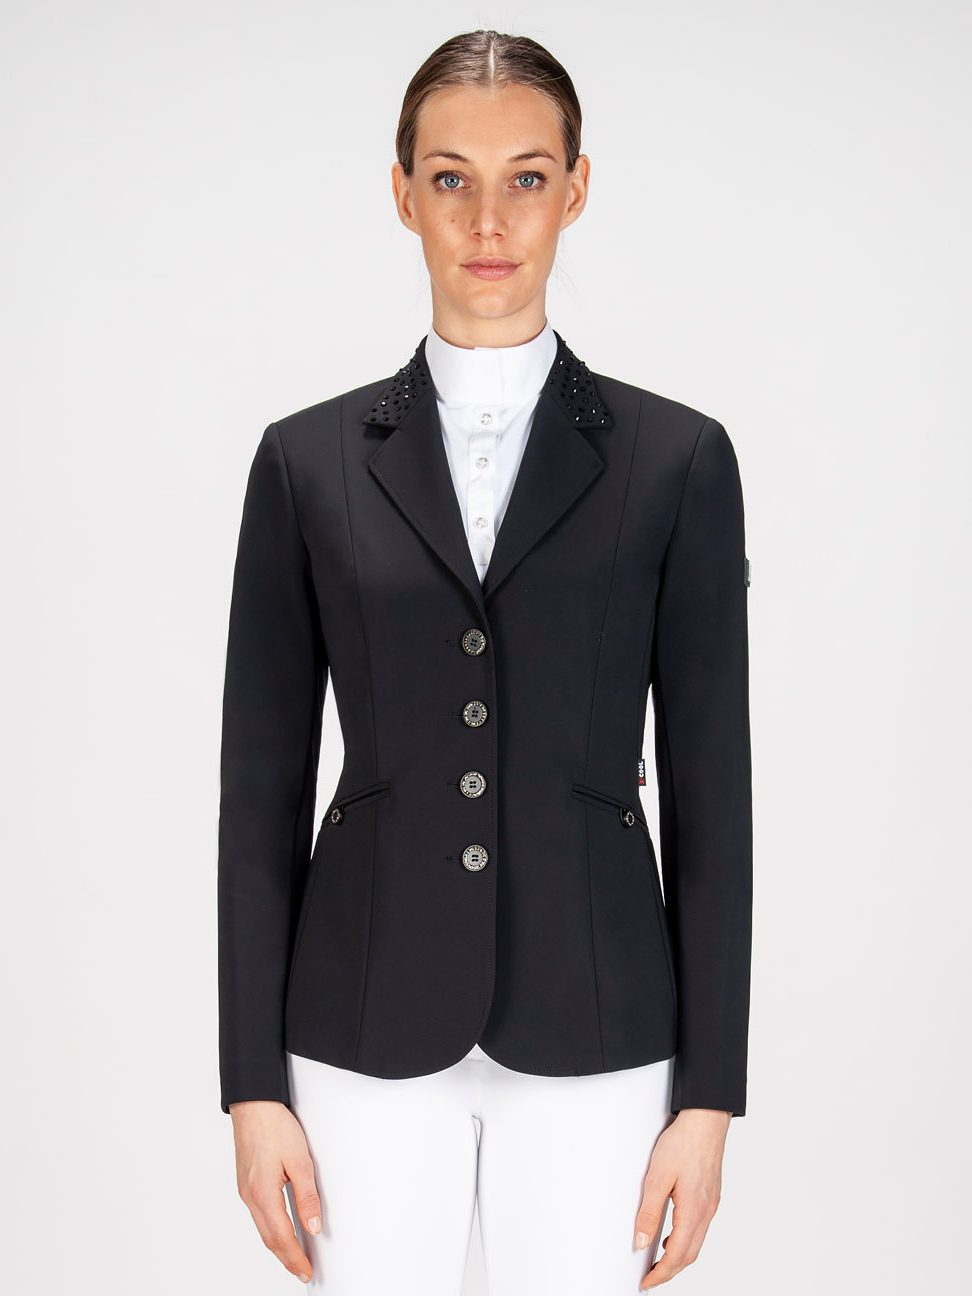 GIOIA - Women's Show Coat w/ Crystals 3